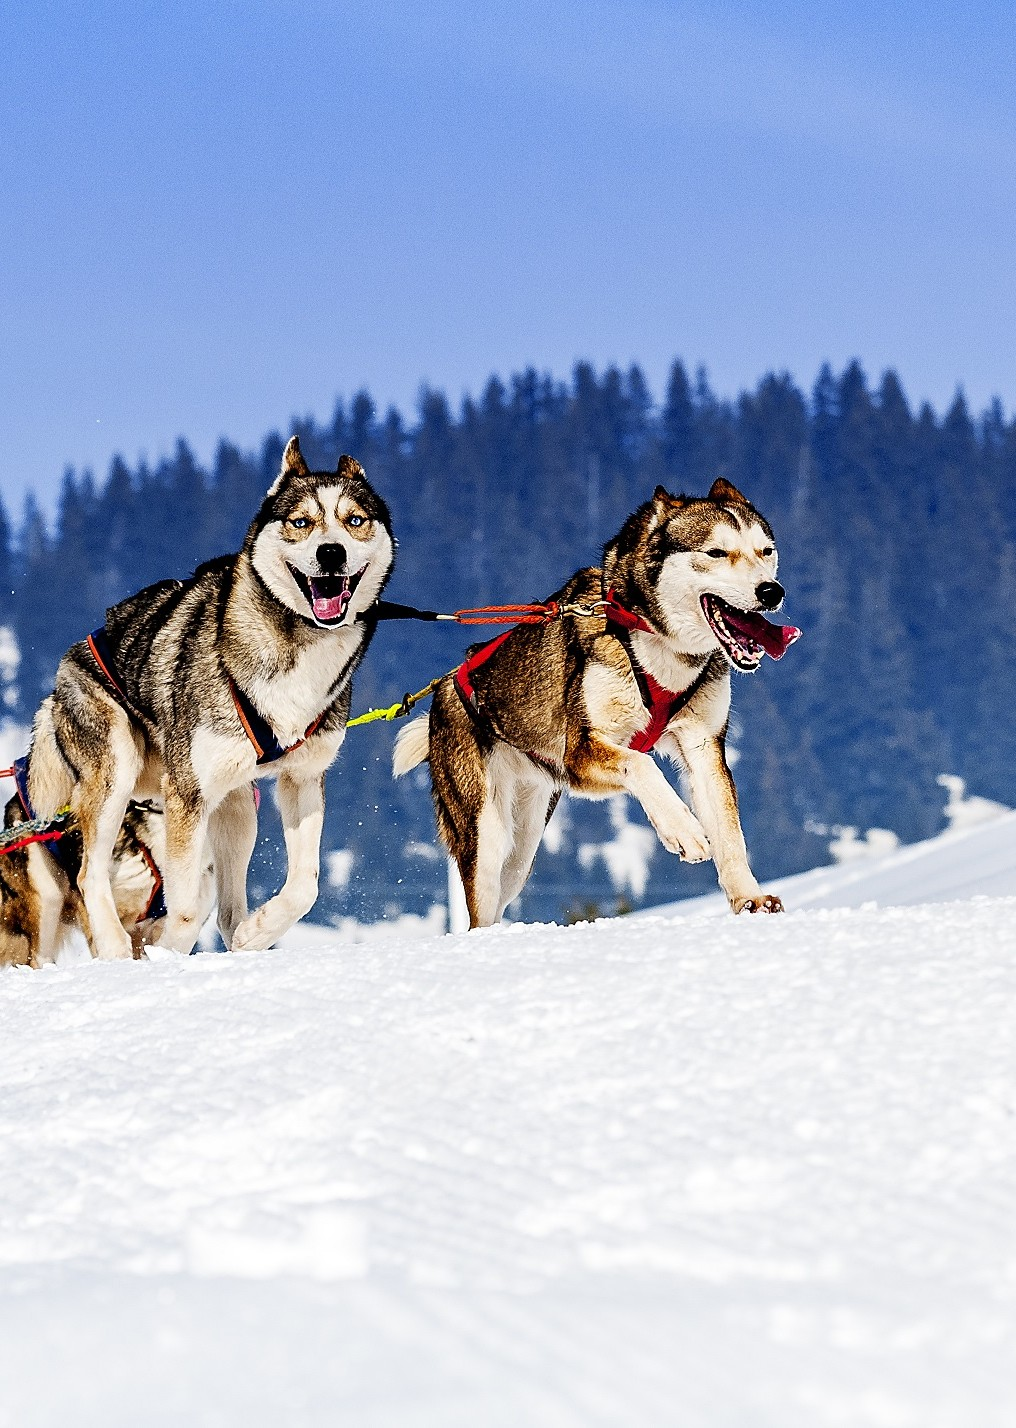 sportive dog team is running in the snow